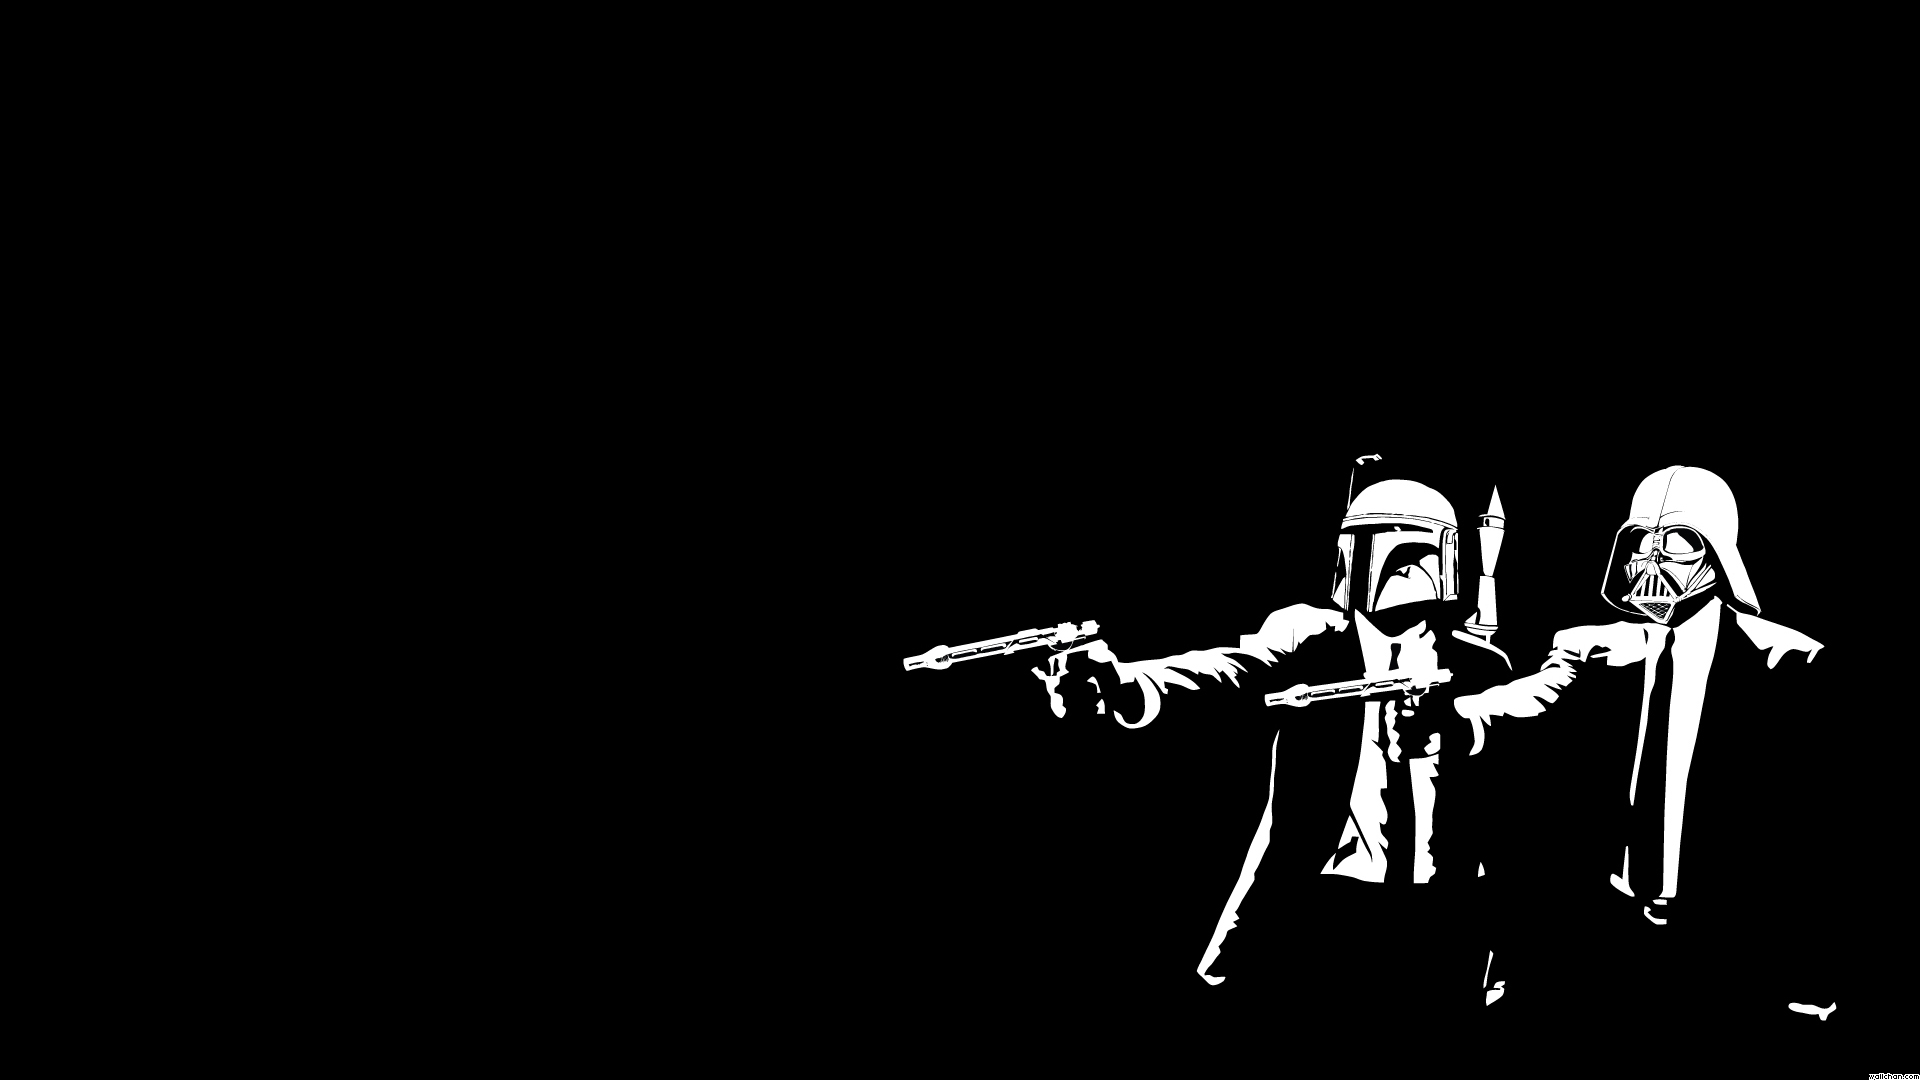 Cool Star Wars Wallpapers (4)